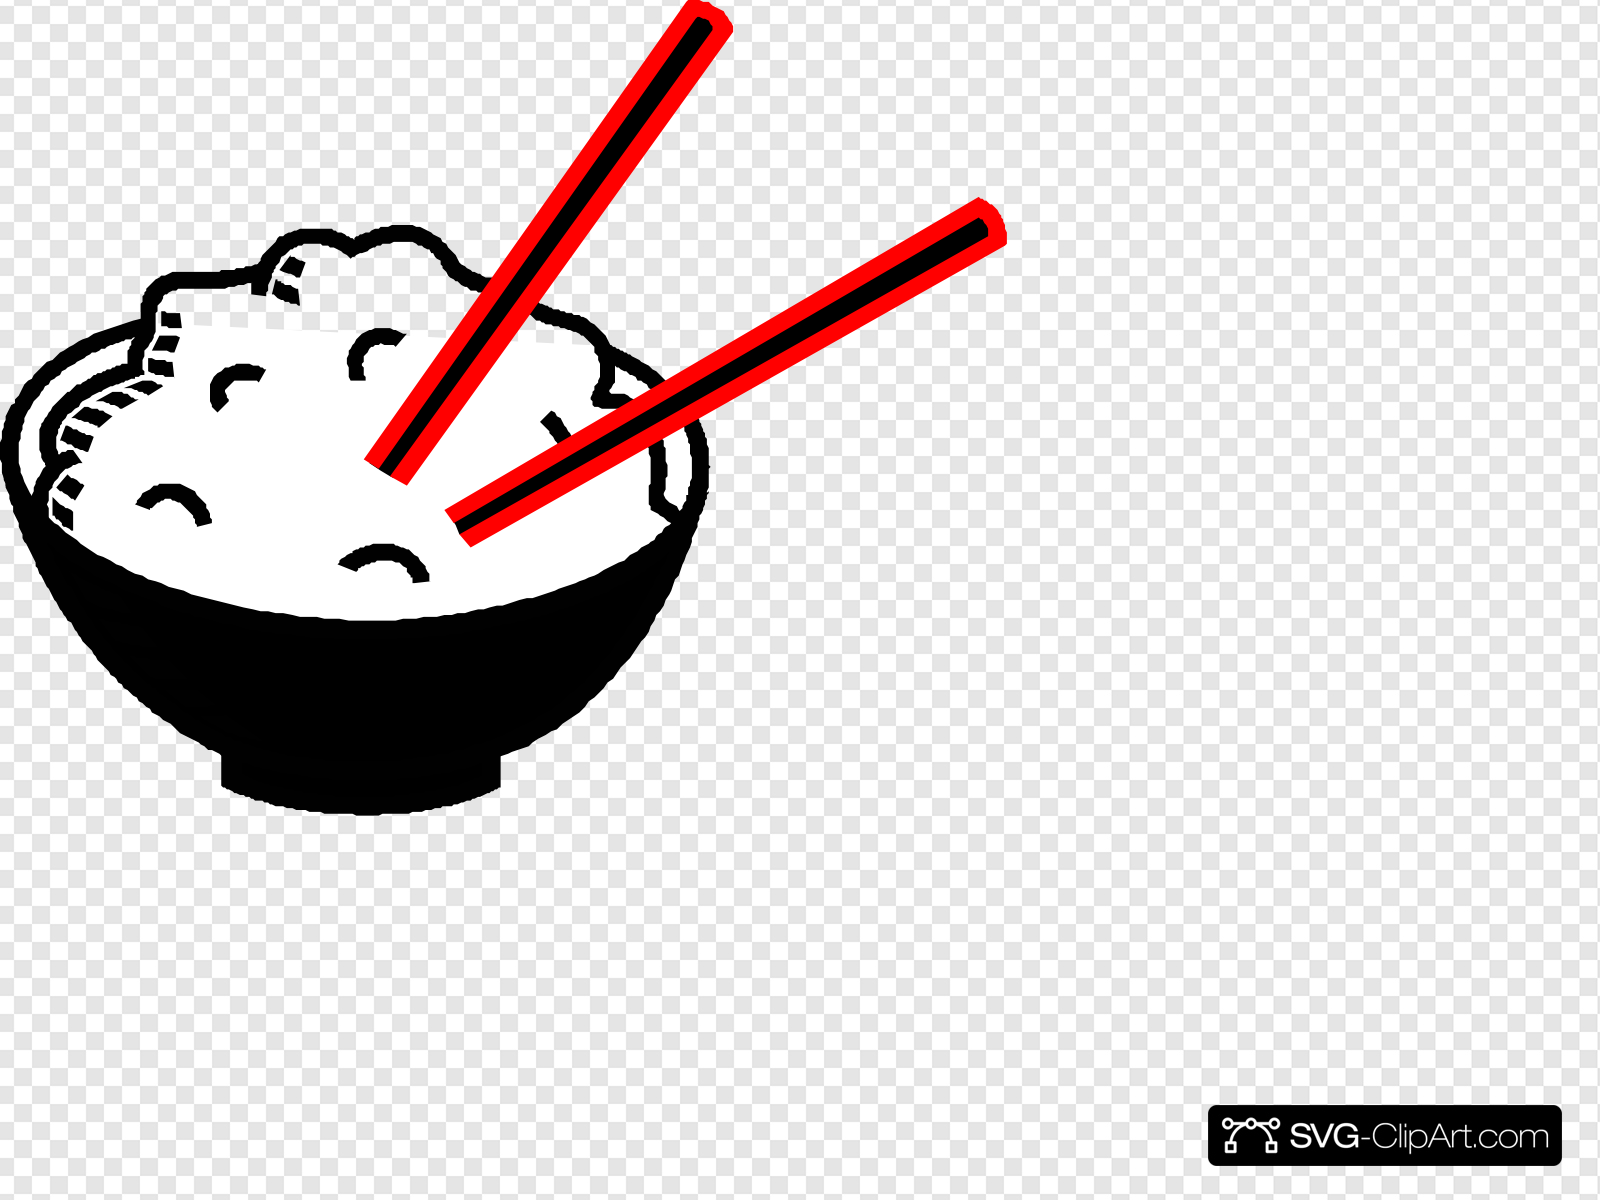 Rice clipart svg. Bowl black and red